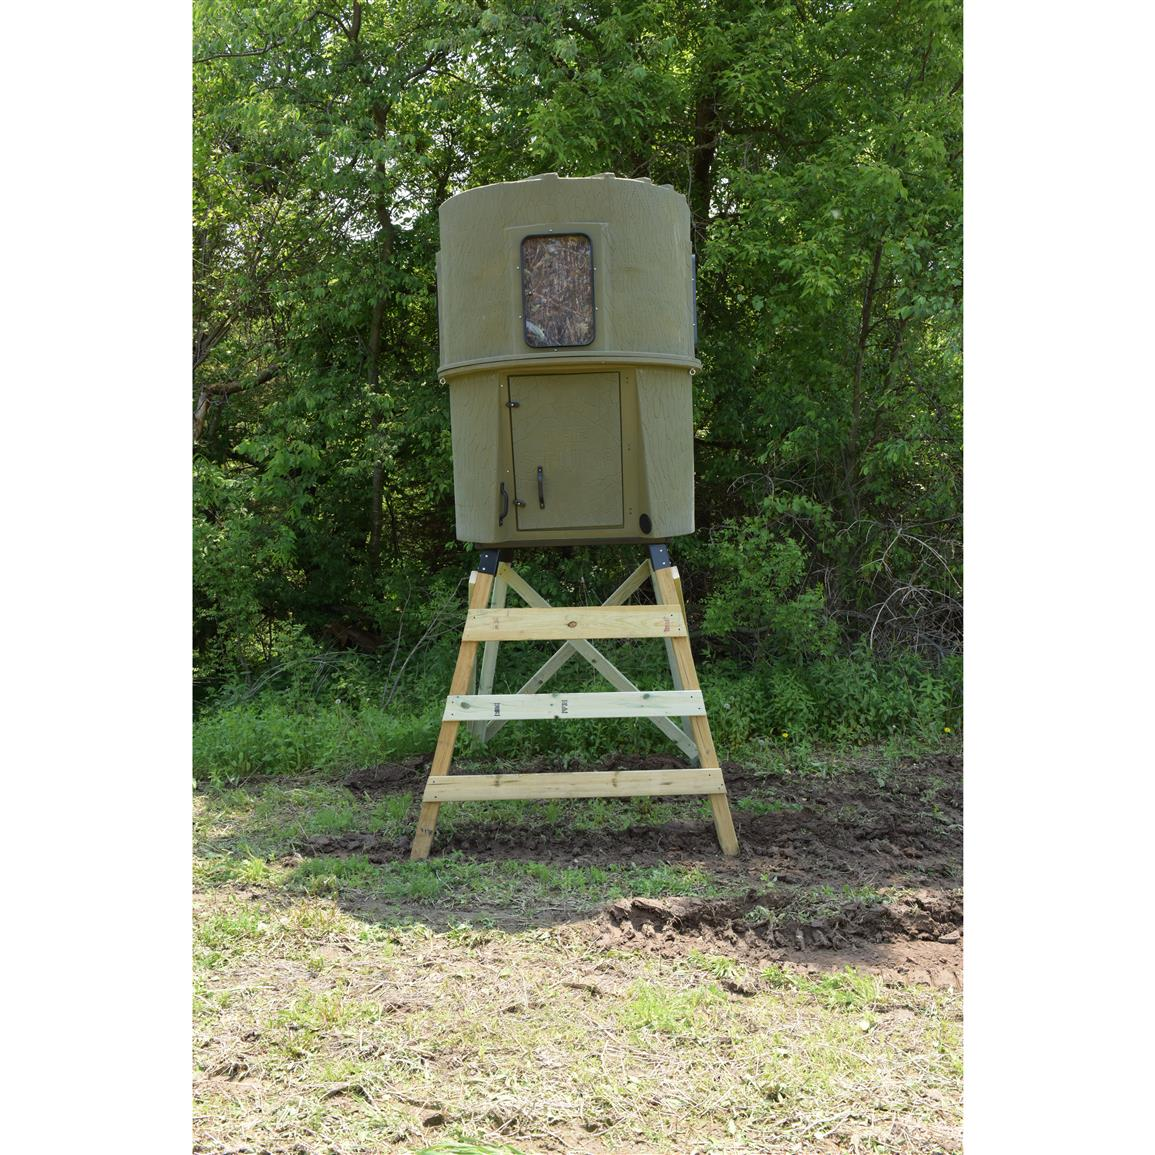 Banks Outdoors® The Stump 3 NBS Tower-style Deer Stand